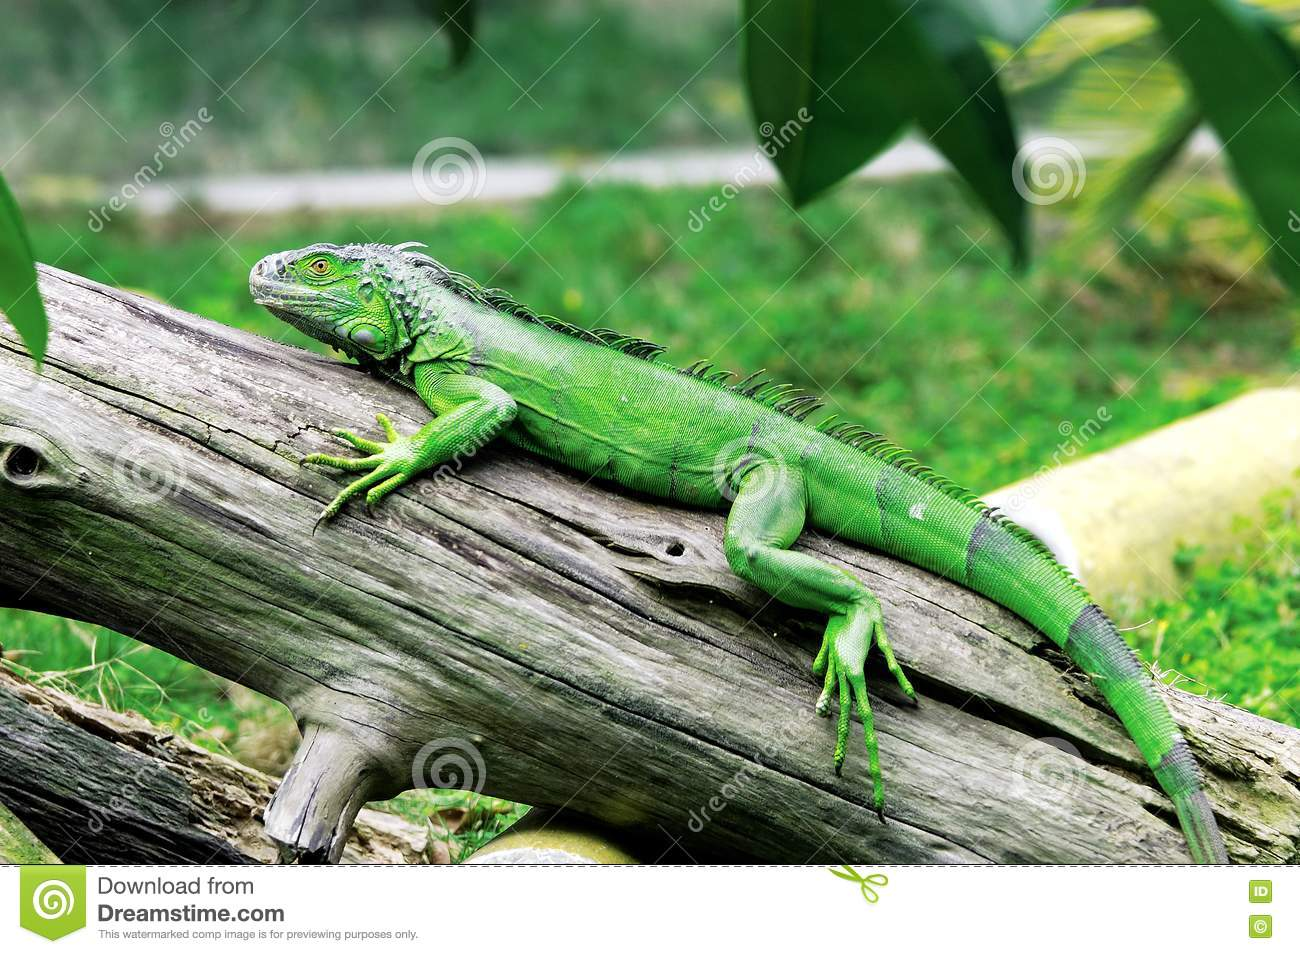 The lizard on the wood